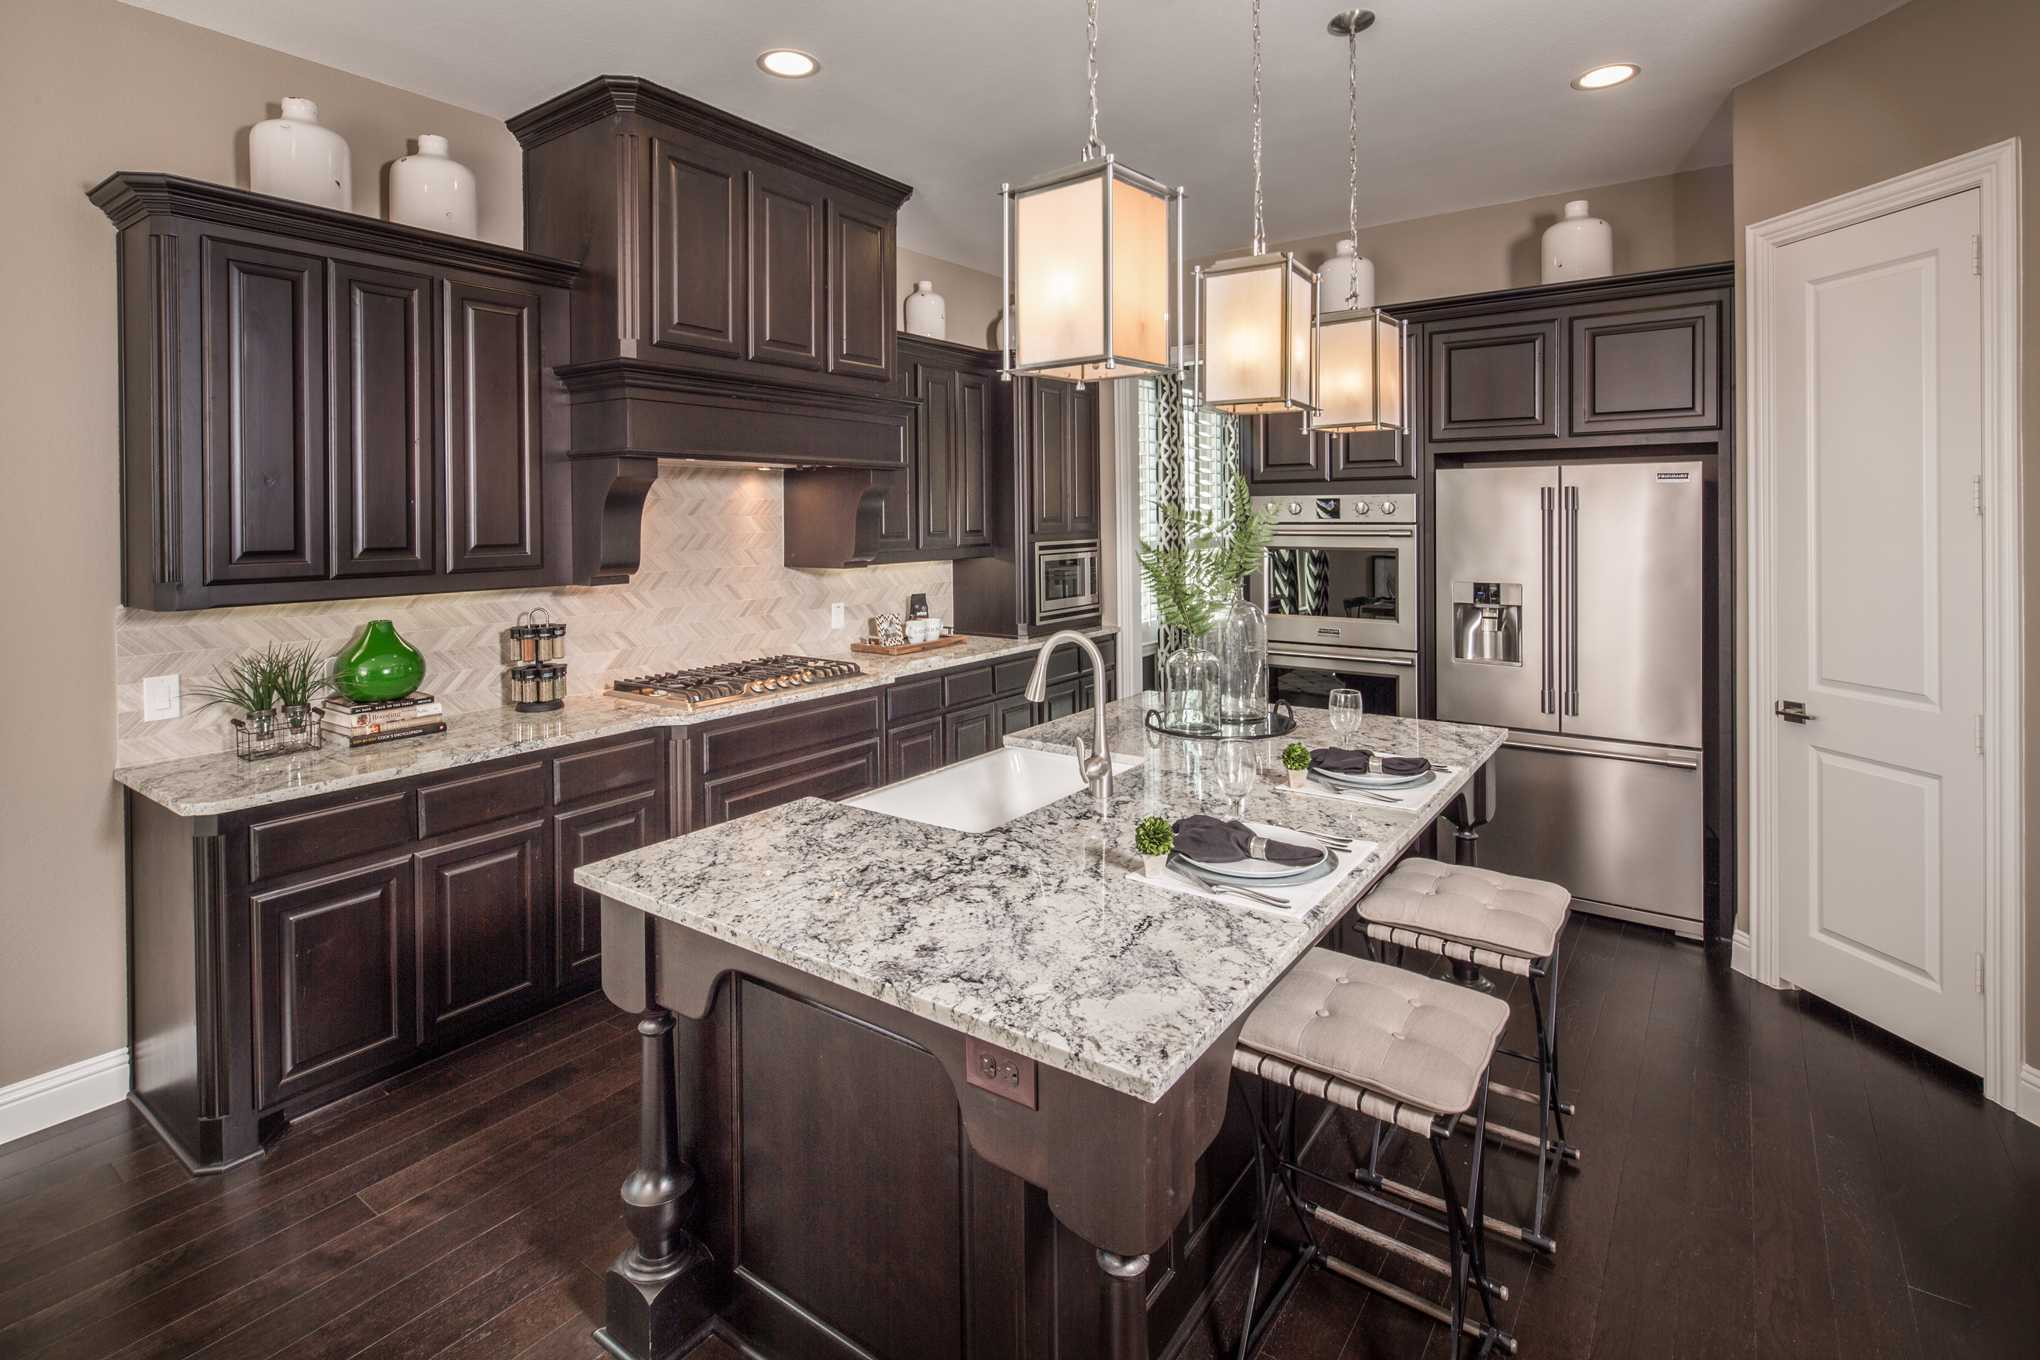 Single Family for Active at Plan 267 2712 Twin Eagles Drive Celina, Texas 75009 United States